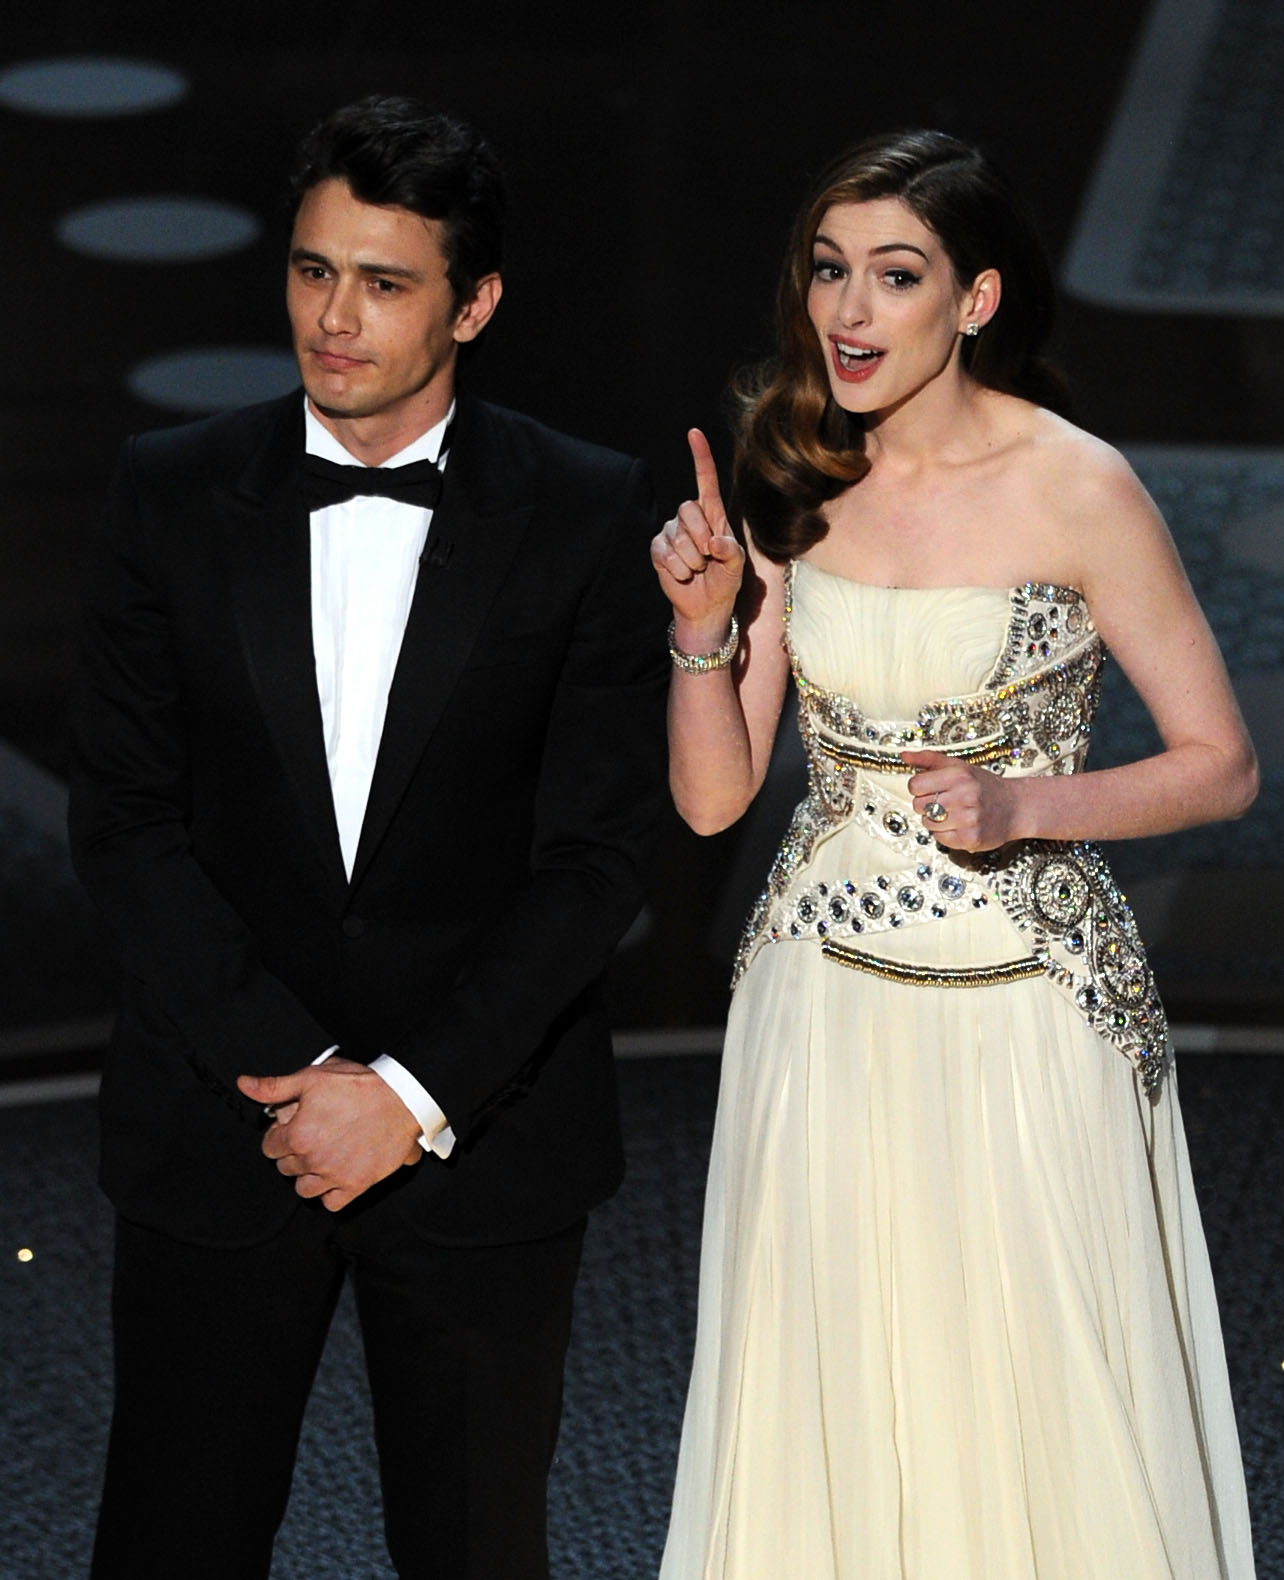 Anne Hathaway James Franco: The Oscars 2019: 10 Most Controversial Moments In Academy